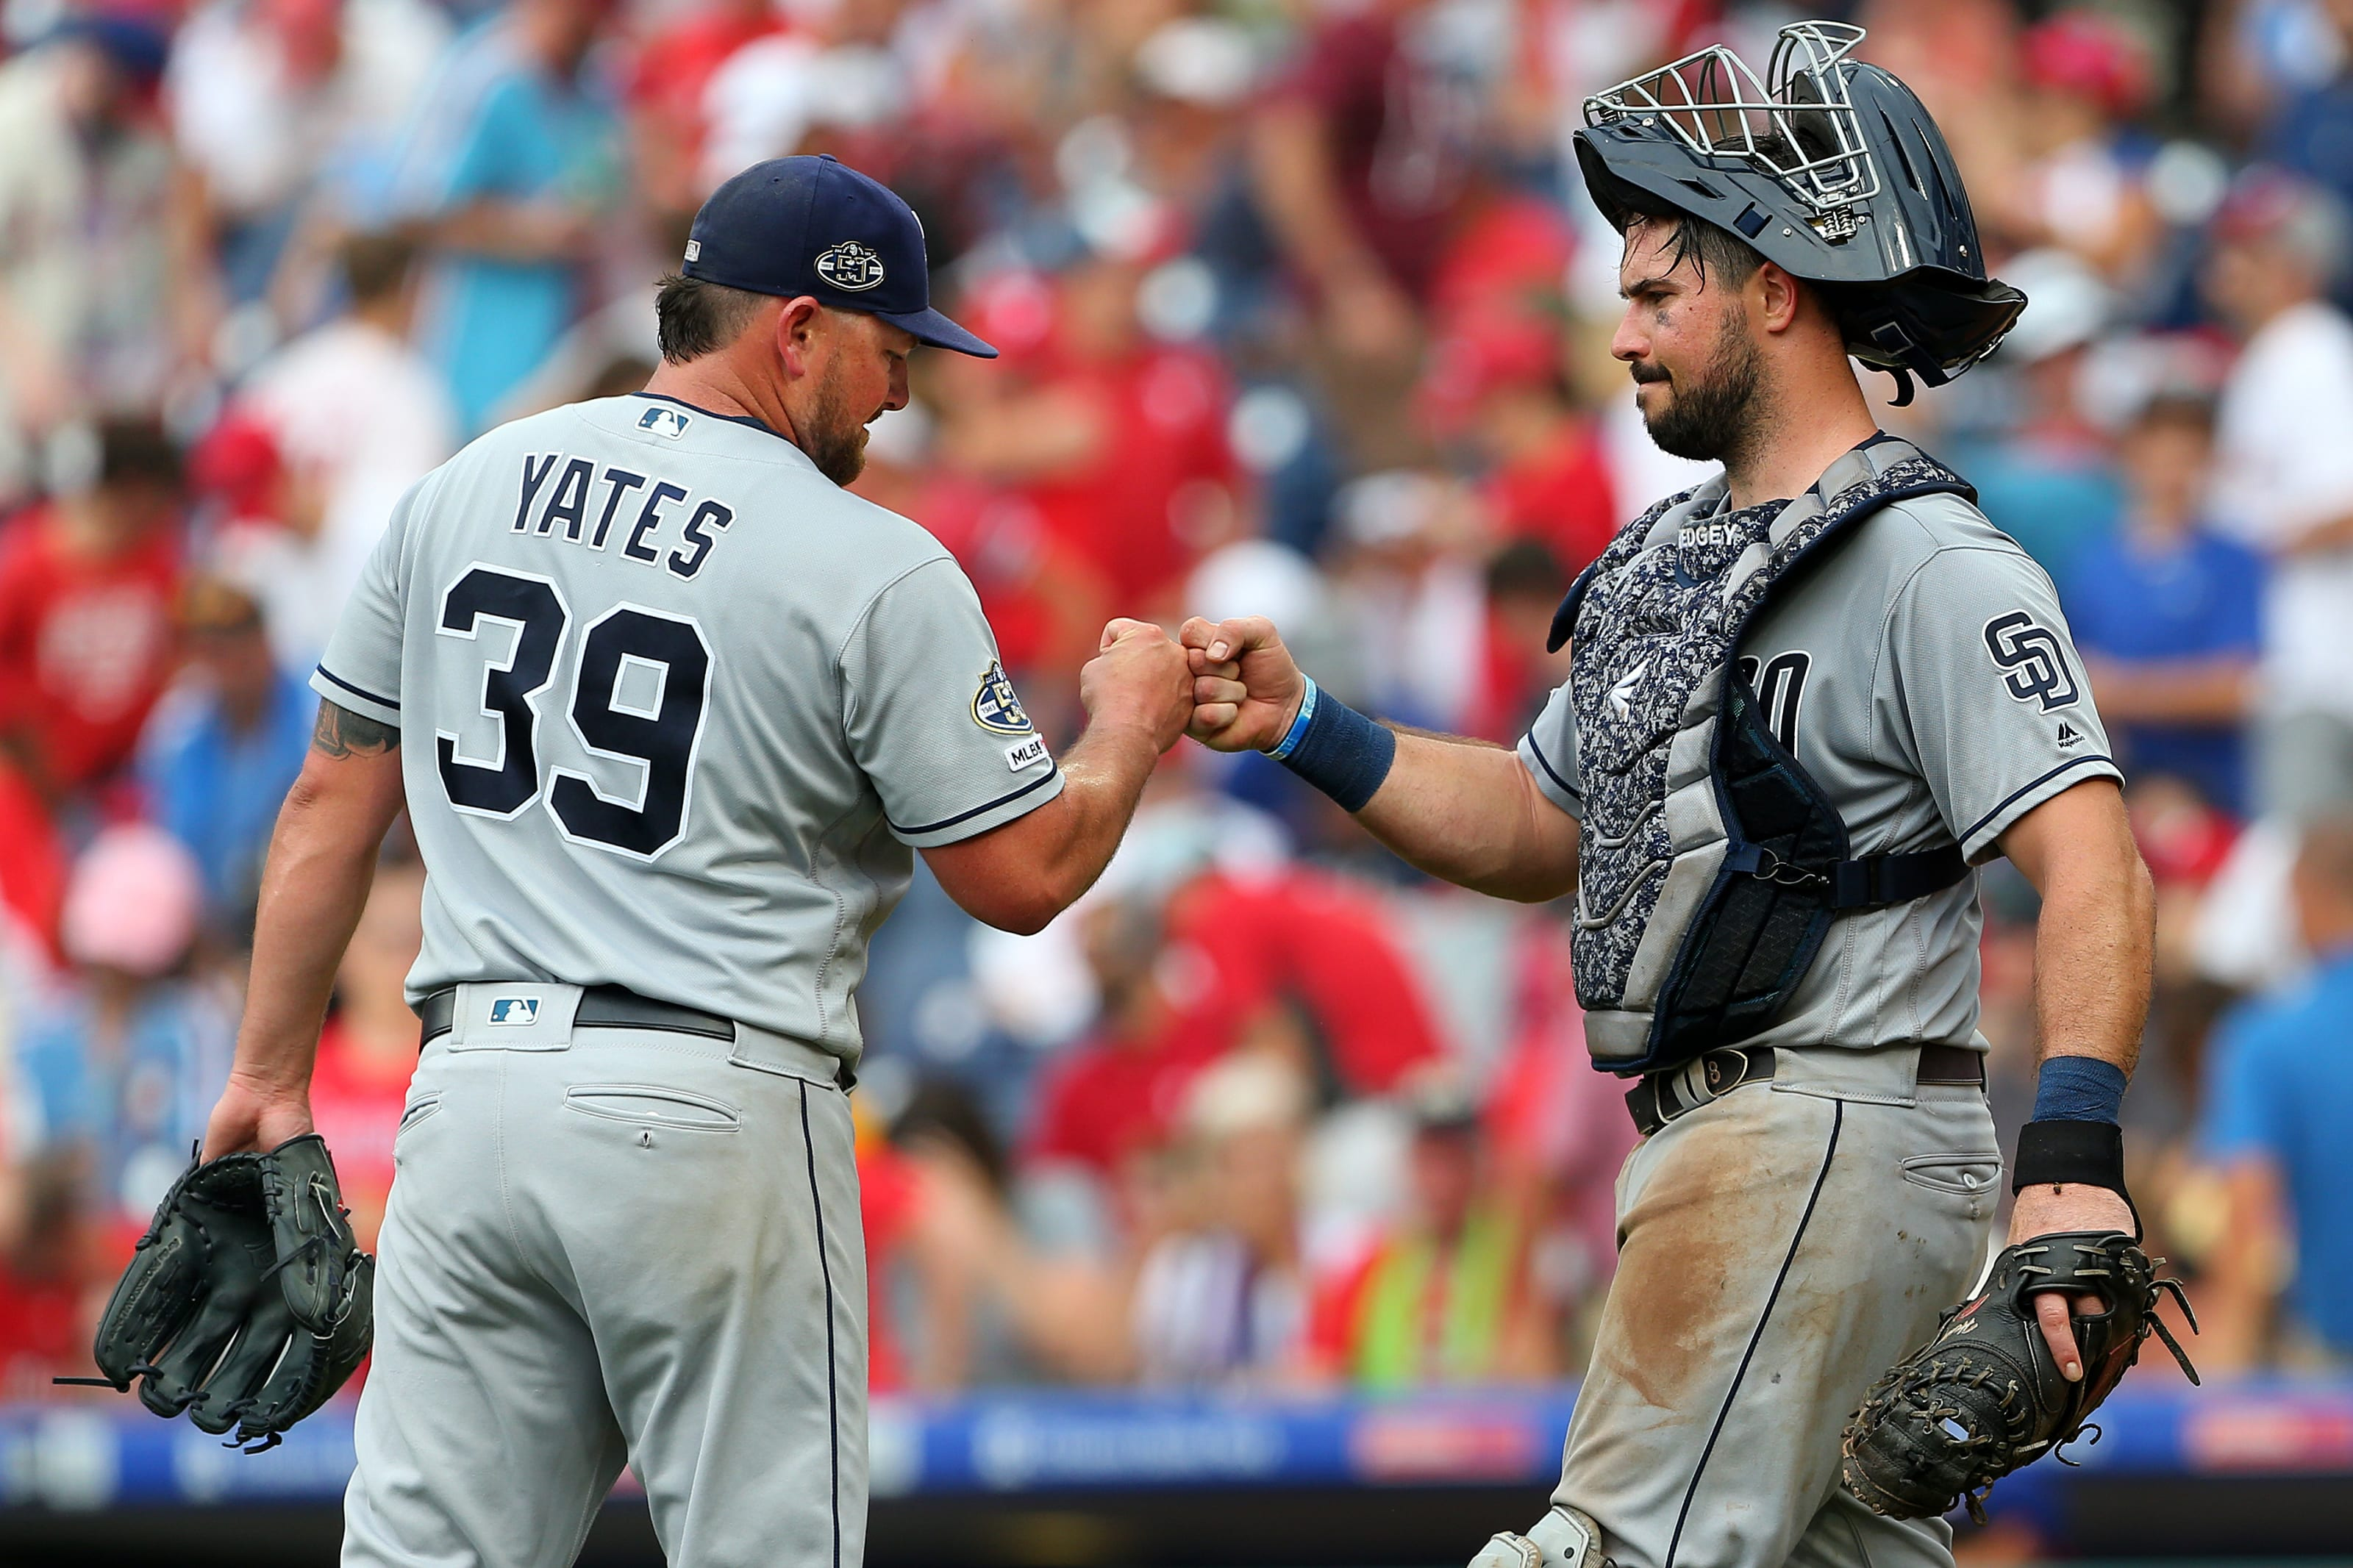 San Diego Padres Kirby Yates and Austin Hedges stole the show along with Luis Urías in series win